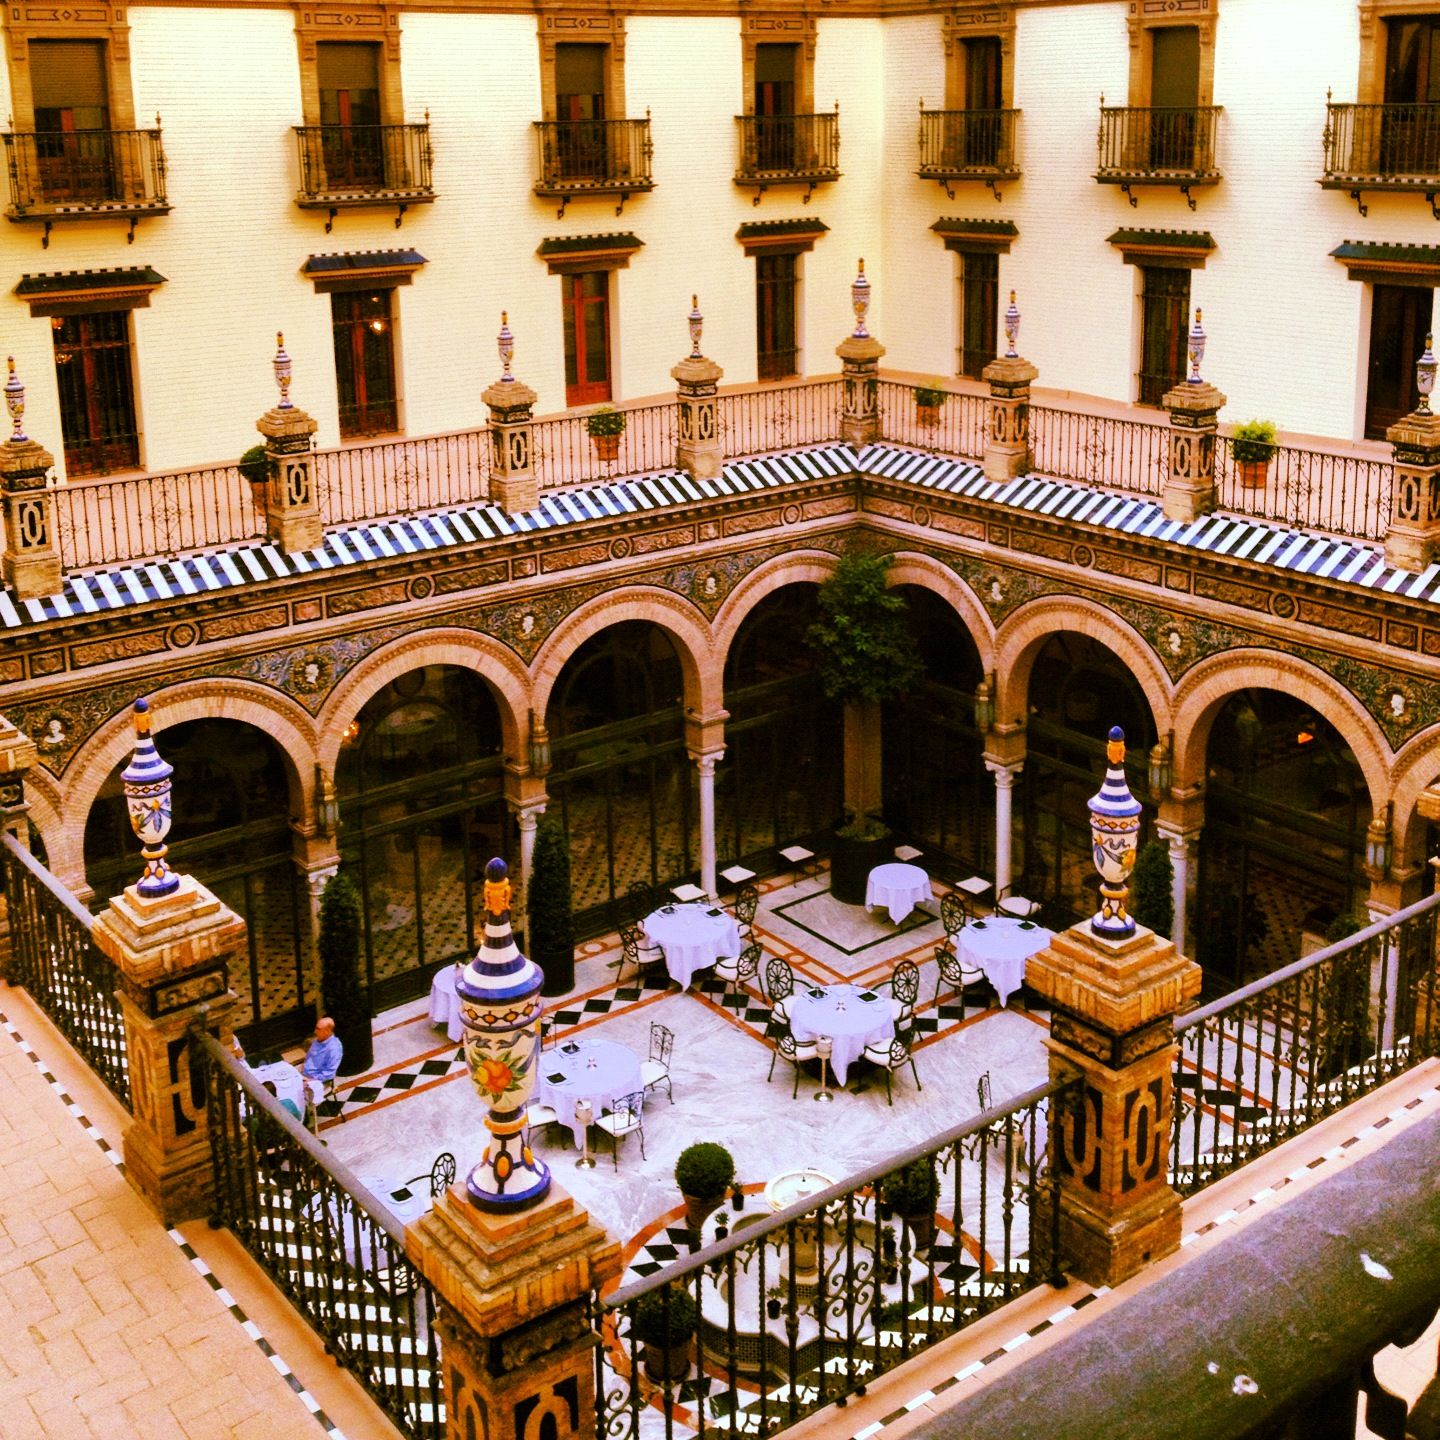 Patio Sevillano Hotel Alfonso Xiii Sevilla Photo By Cecilia Cervantes I Want To Go To There Spain Photography Sevilla Spain Spain And Portugal